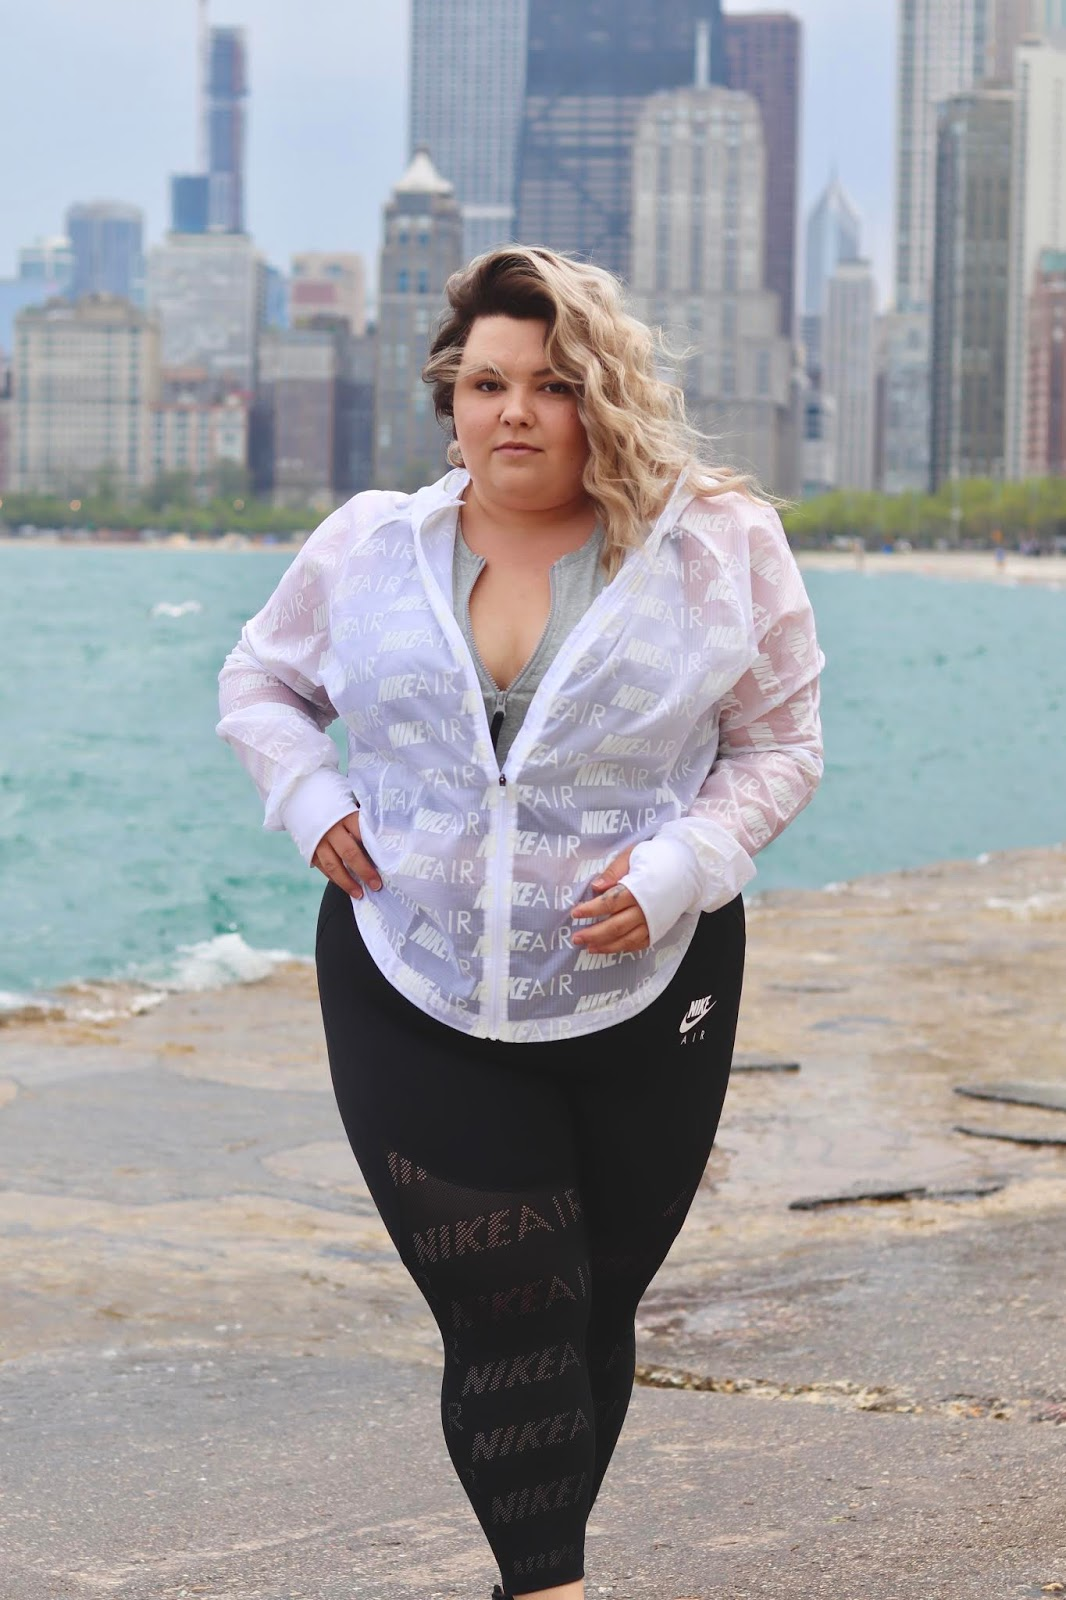 Chicago Plus Size Petite Fashion Blogger, YouTuber, and model Natalie Craig, of Natalie in the City, reviews Nike's plus size line.